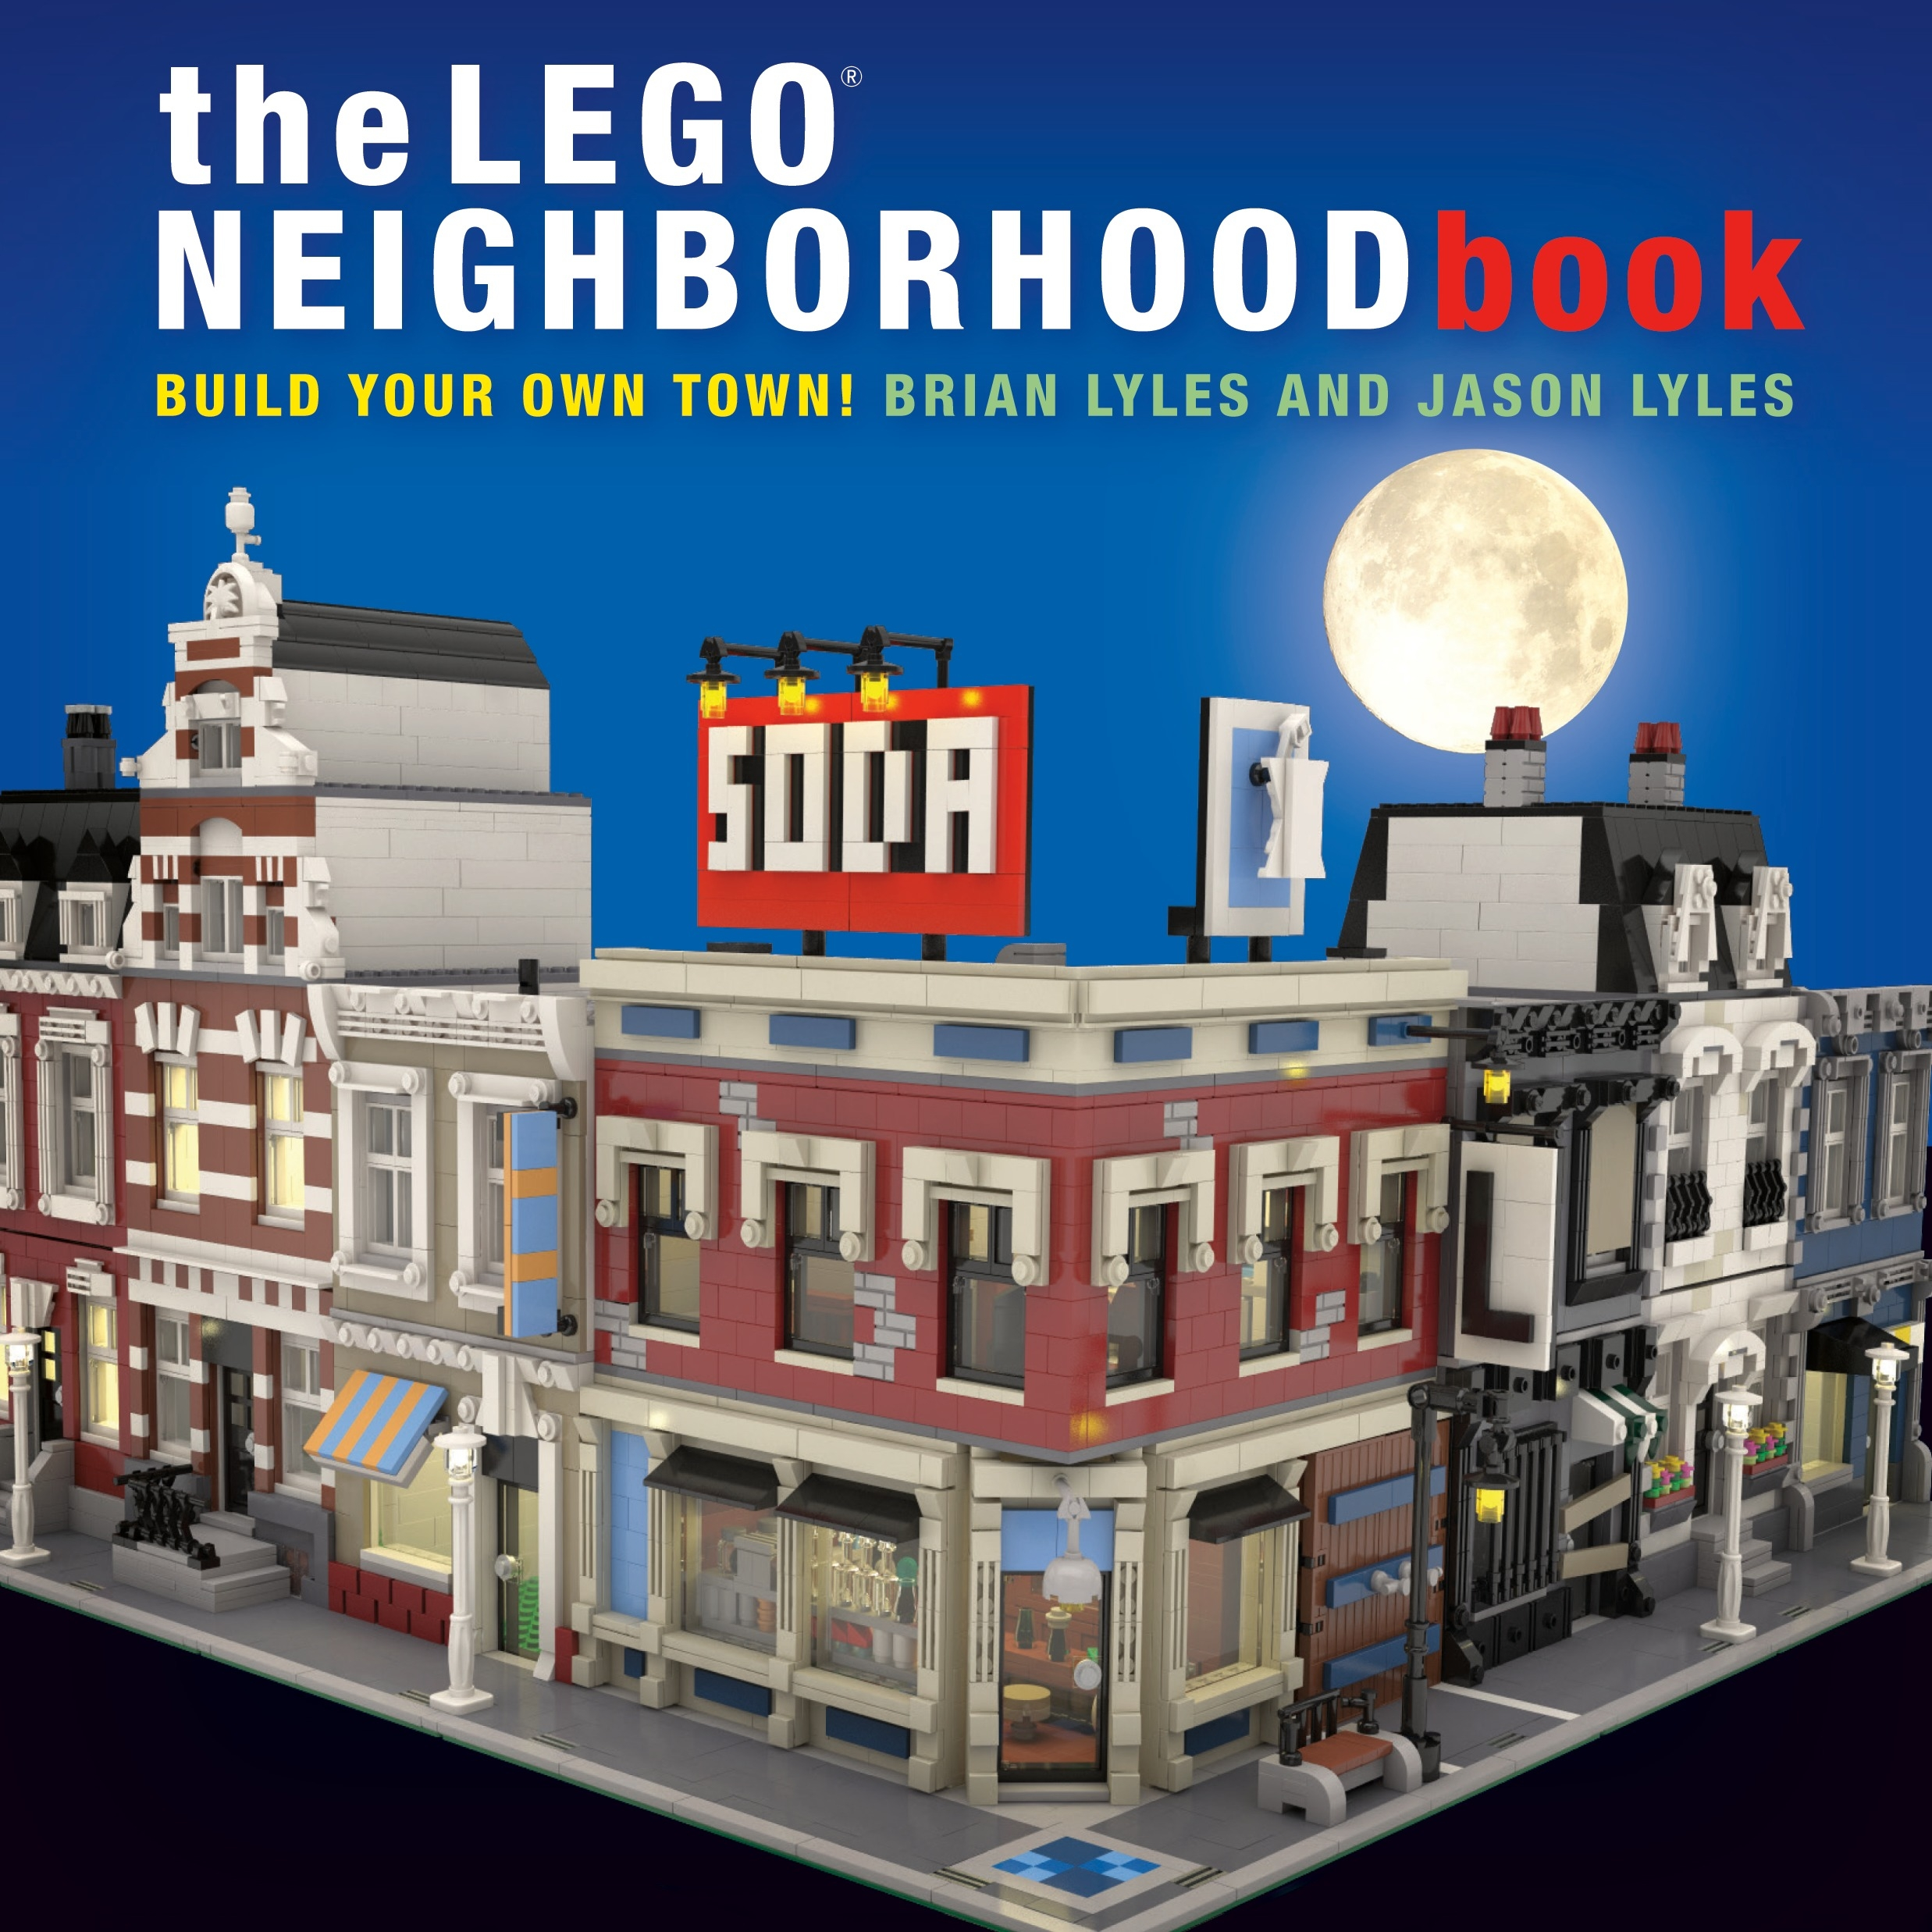 The LEGO Neighborhood Book: Build a LEGO Town!